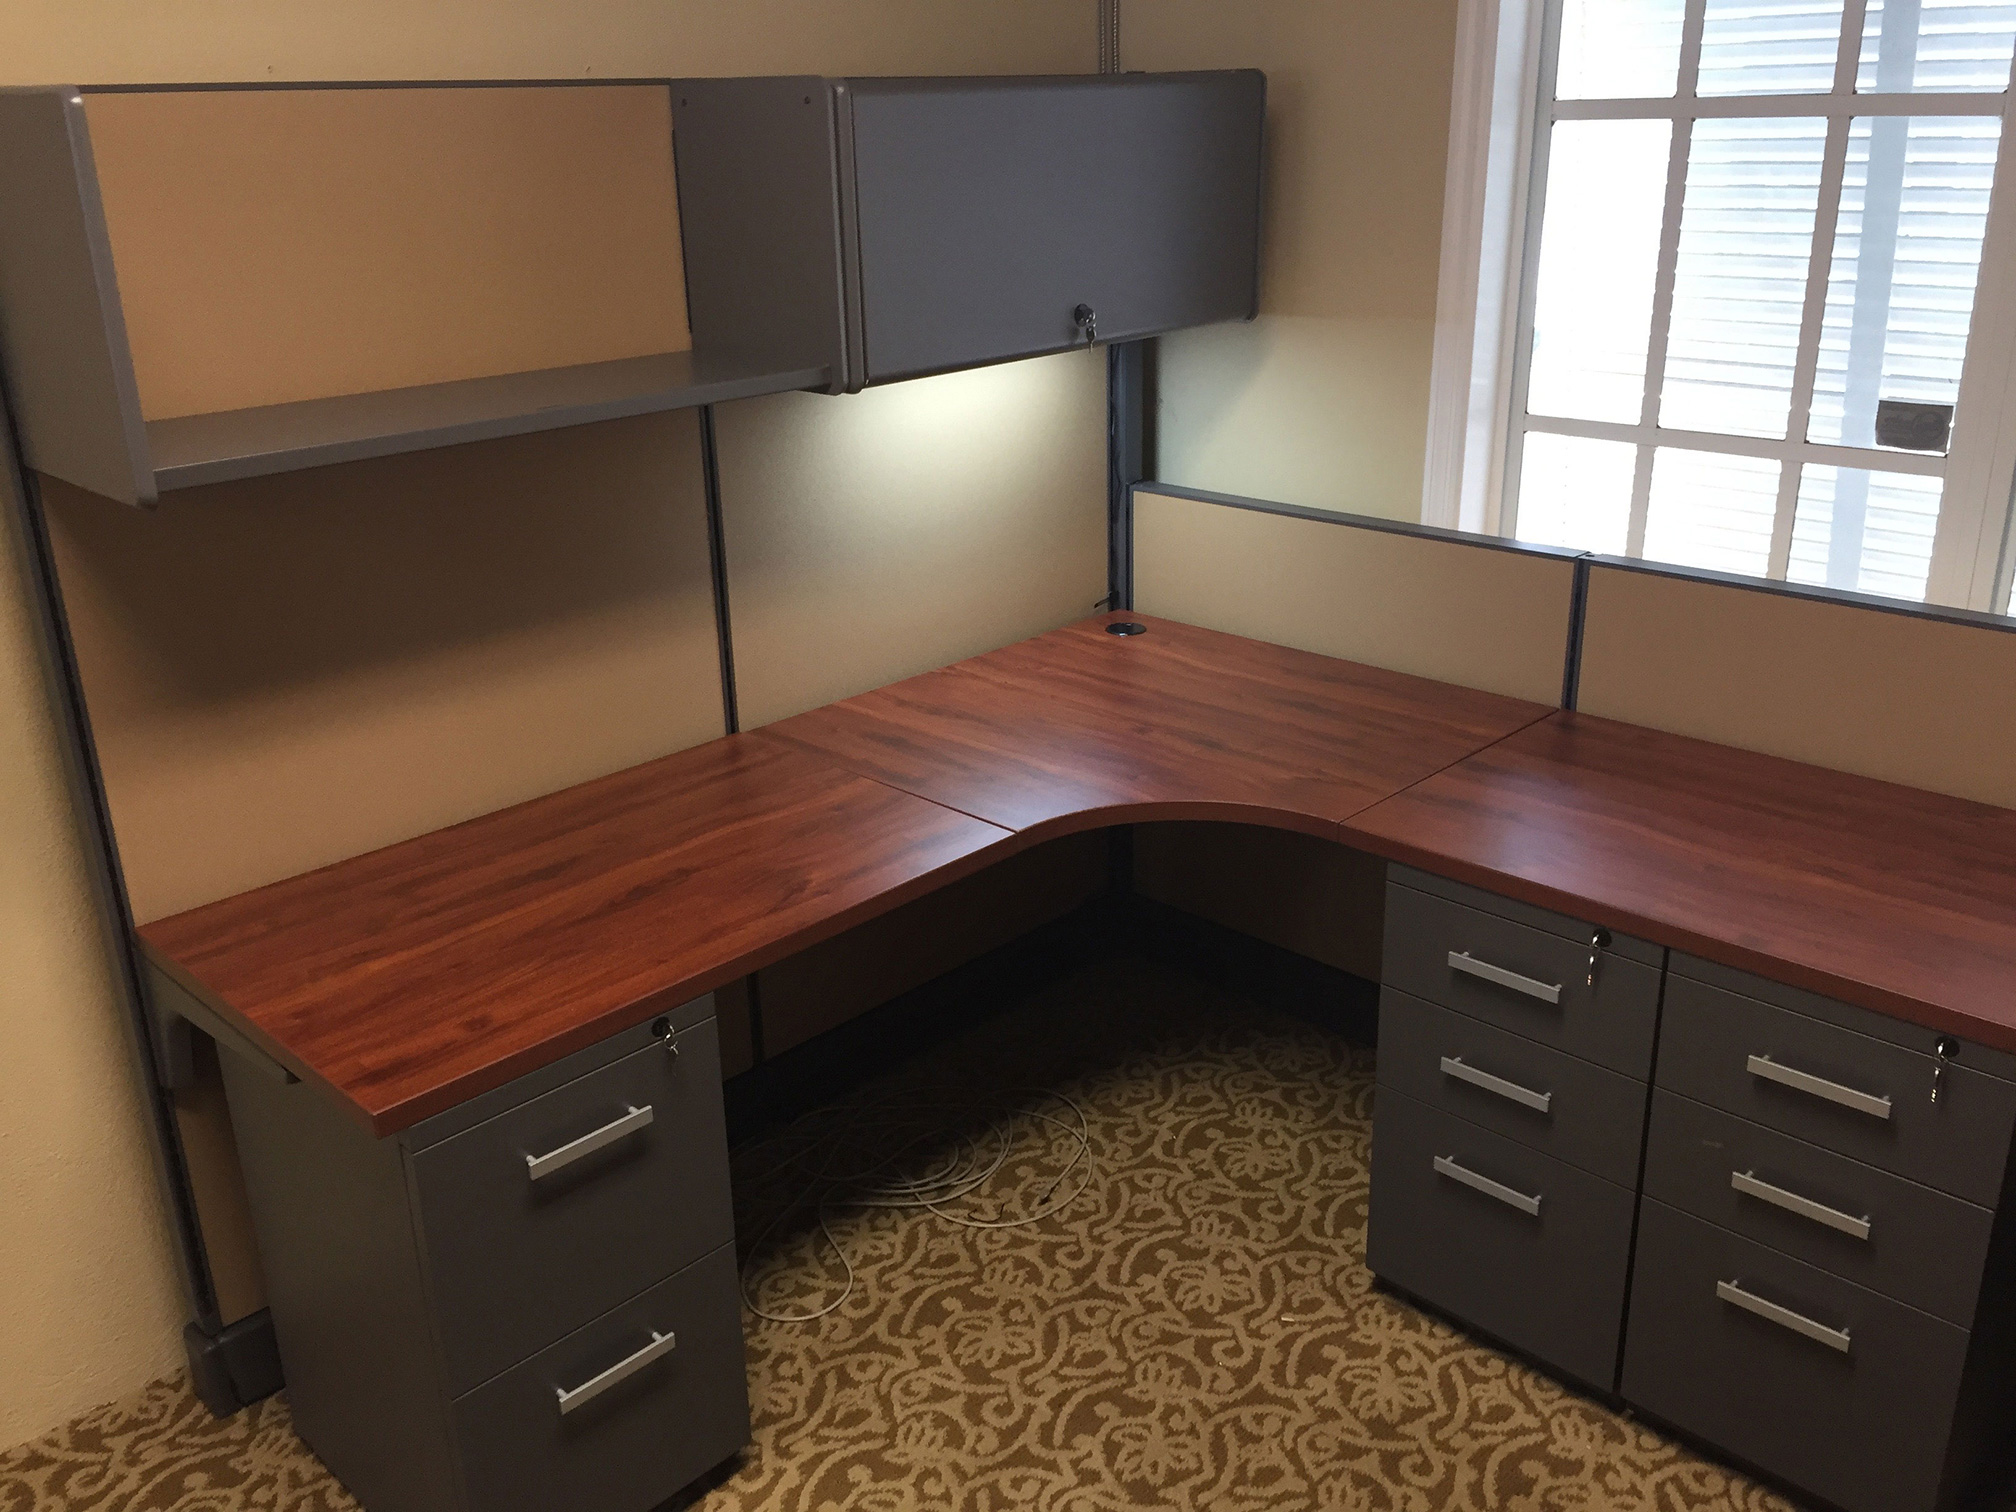 office-cubicles-for-sale-in-palm-beach-florida-2.jpg